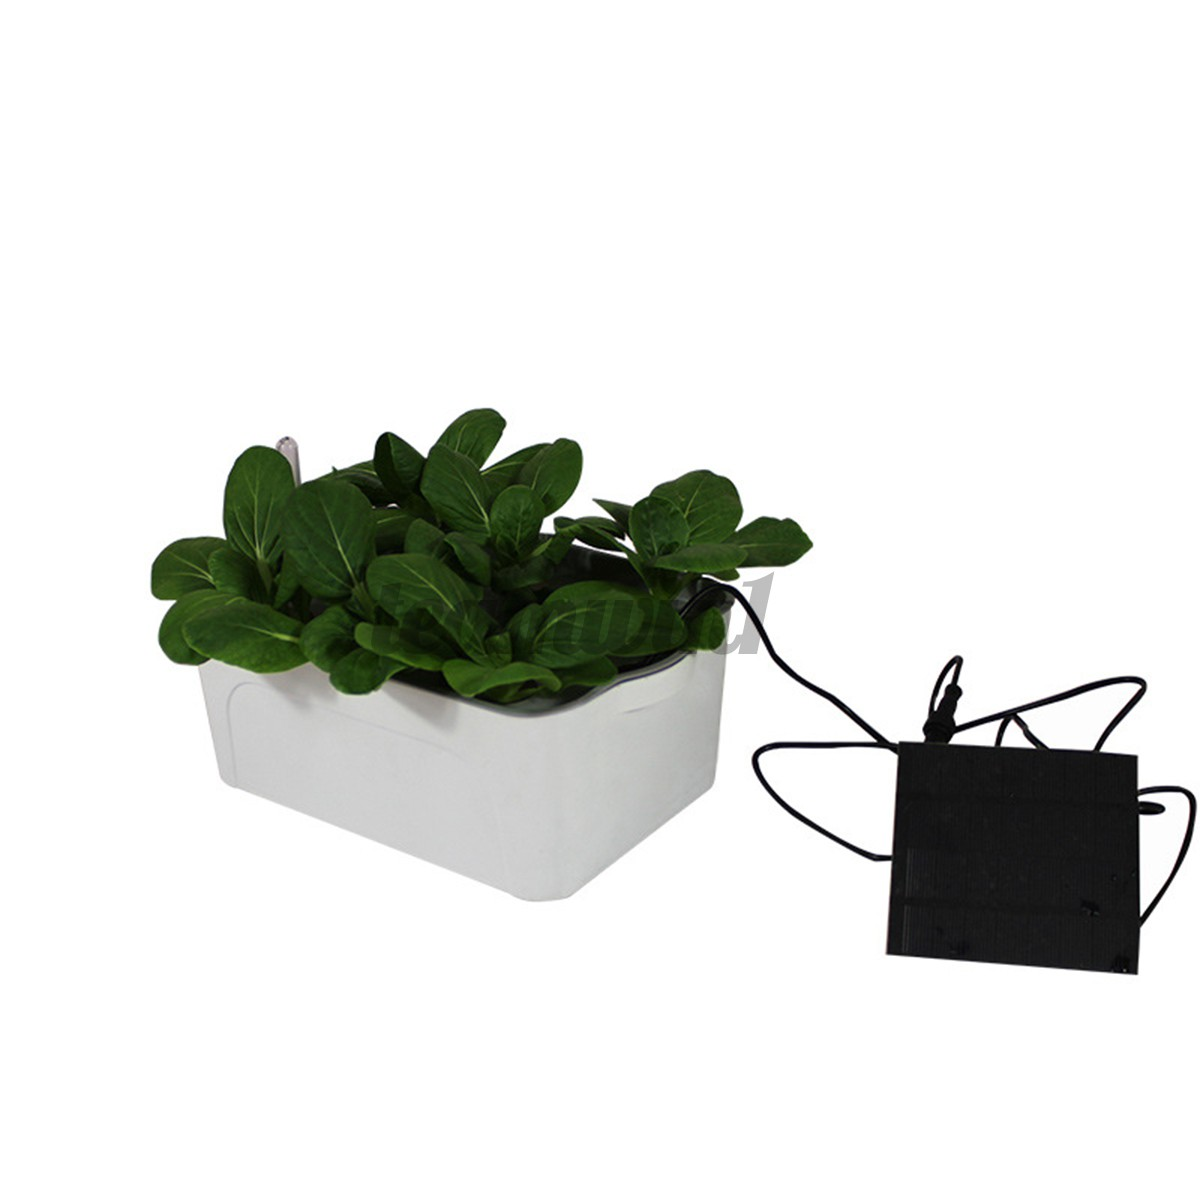 Hydroponic System Growing Kit Deep Water Culture Vegetable Plant Indoor Outdoor Shopee Malaysia